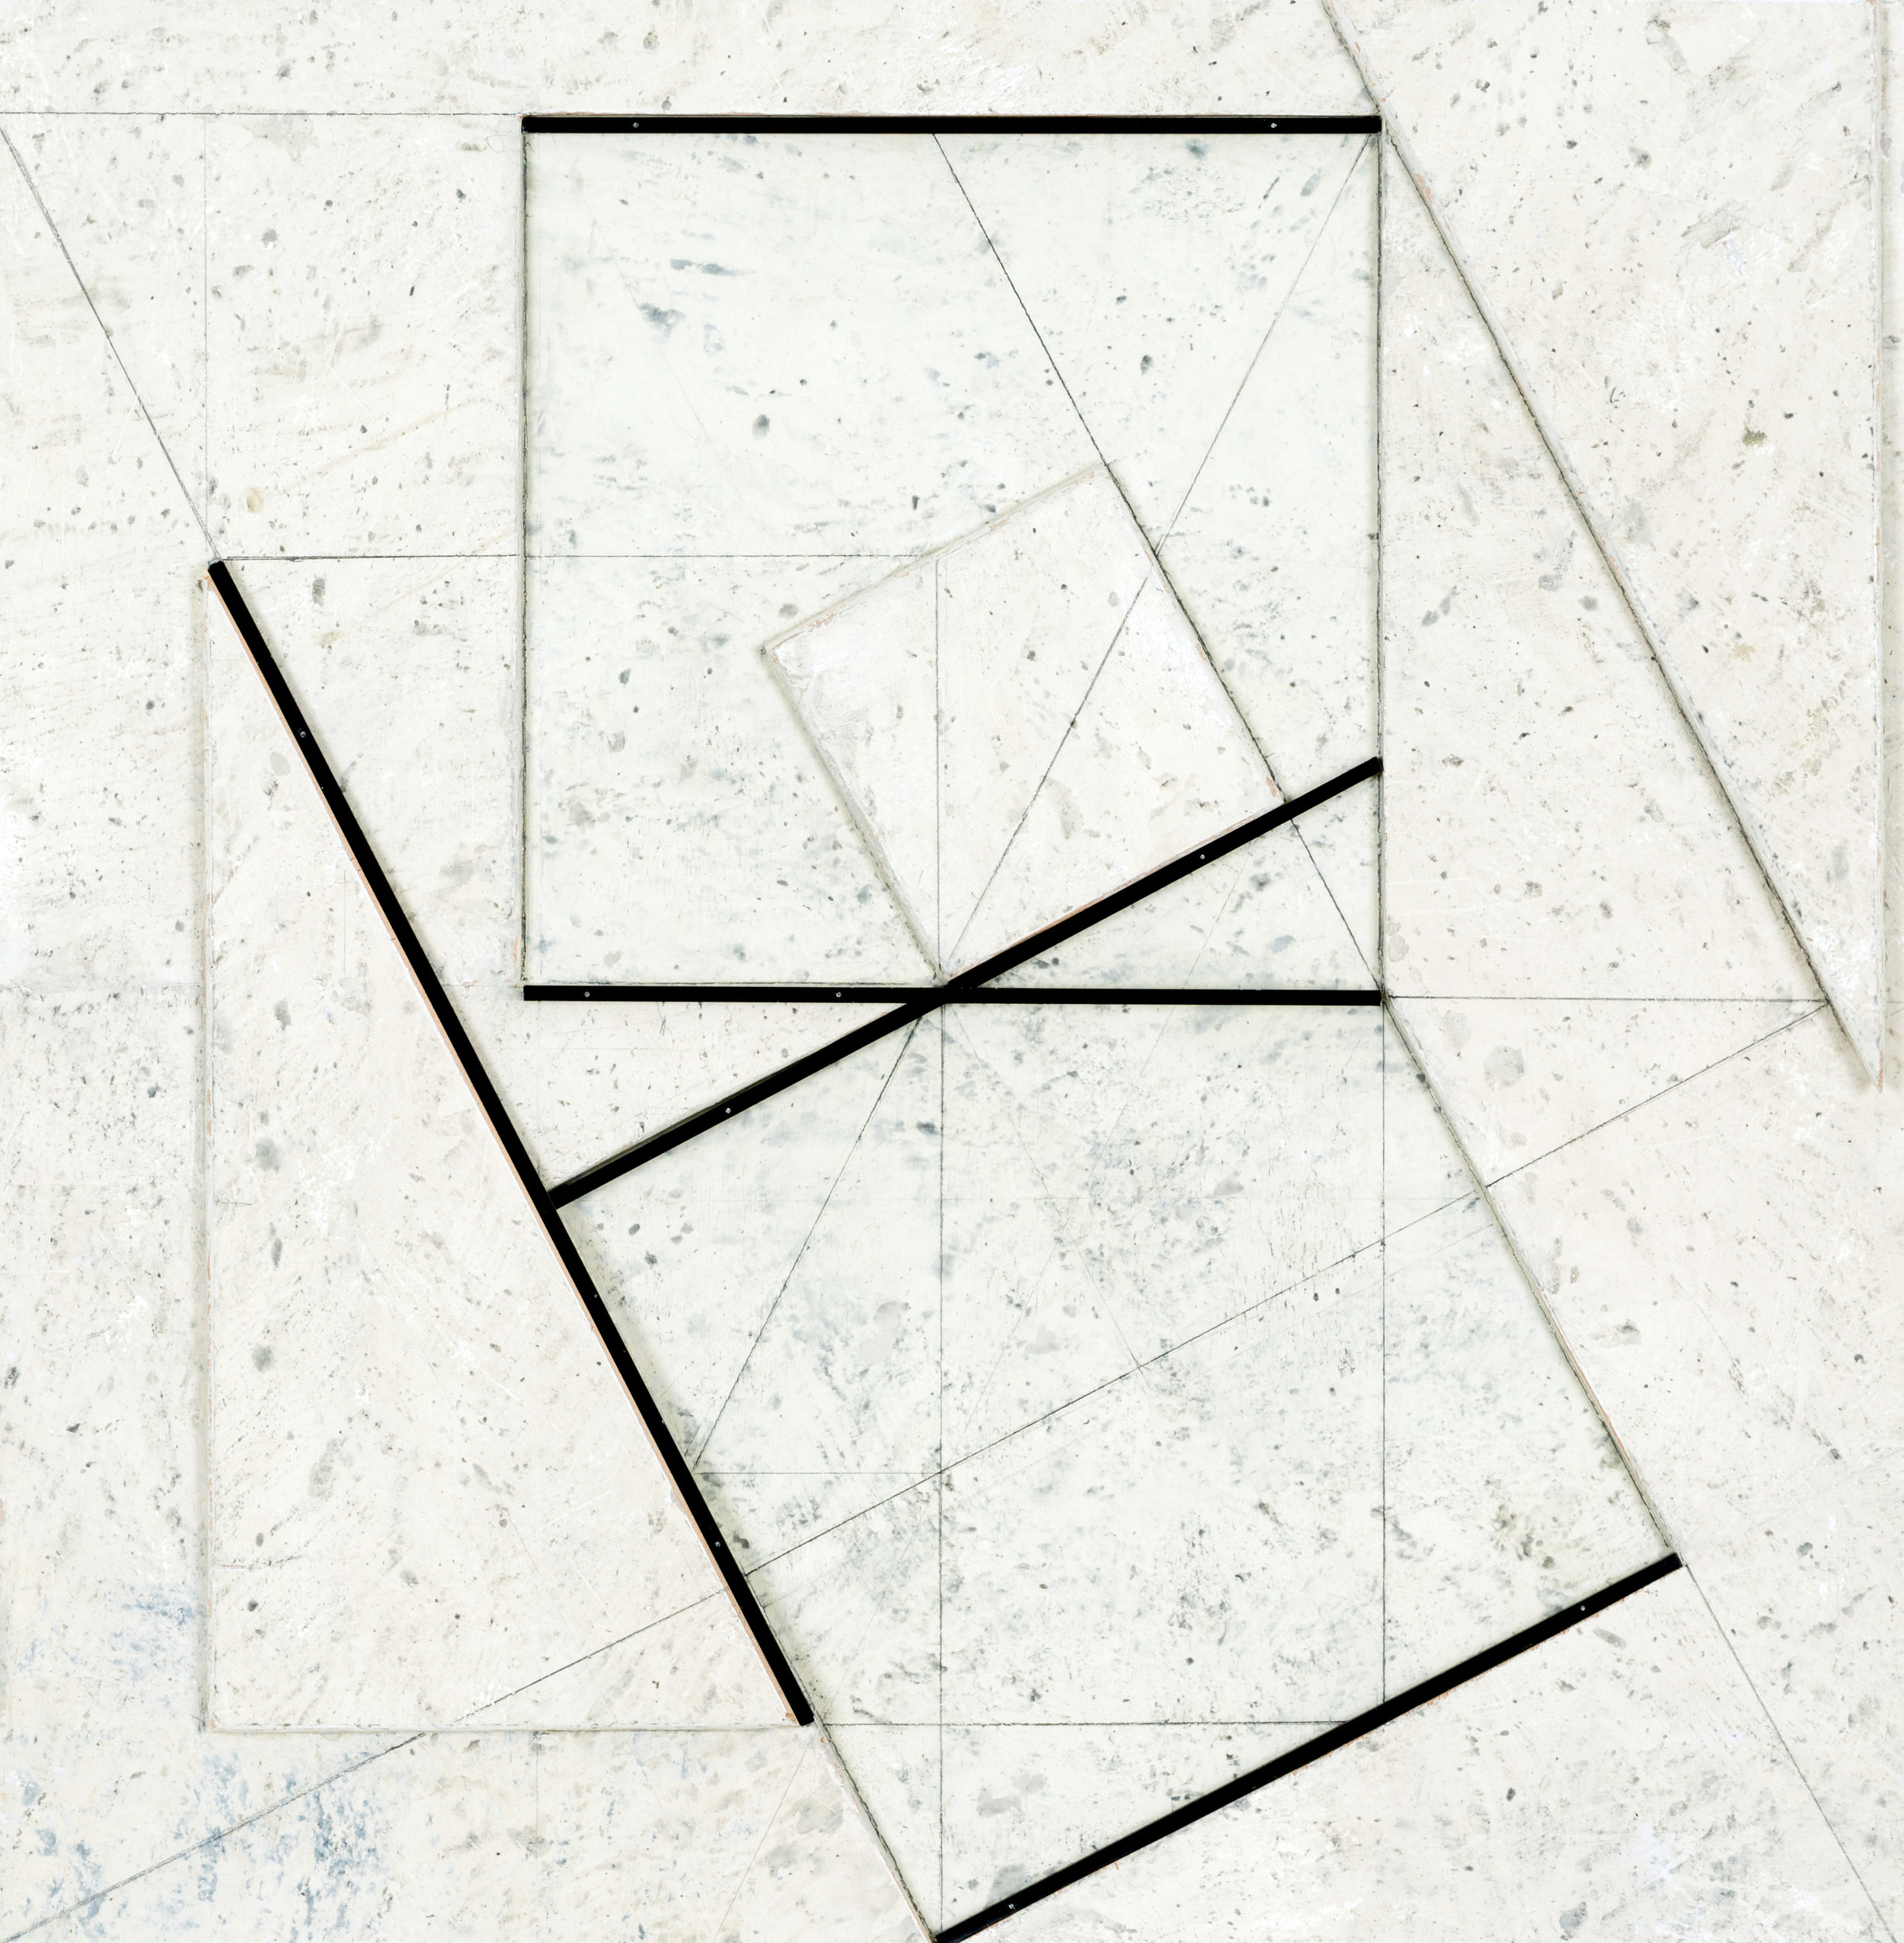 Stanislav Kolíbal_Grey relief, 2016, assemblage, boards, metal, pencil drawing, 63 x 61 cm_high-res.jpg